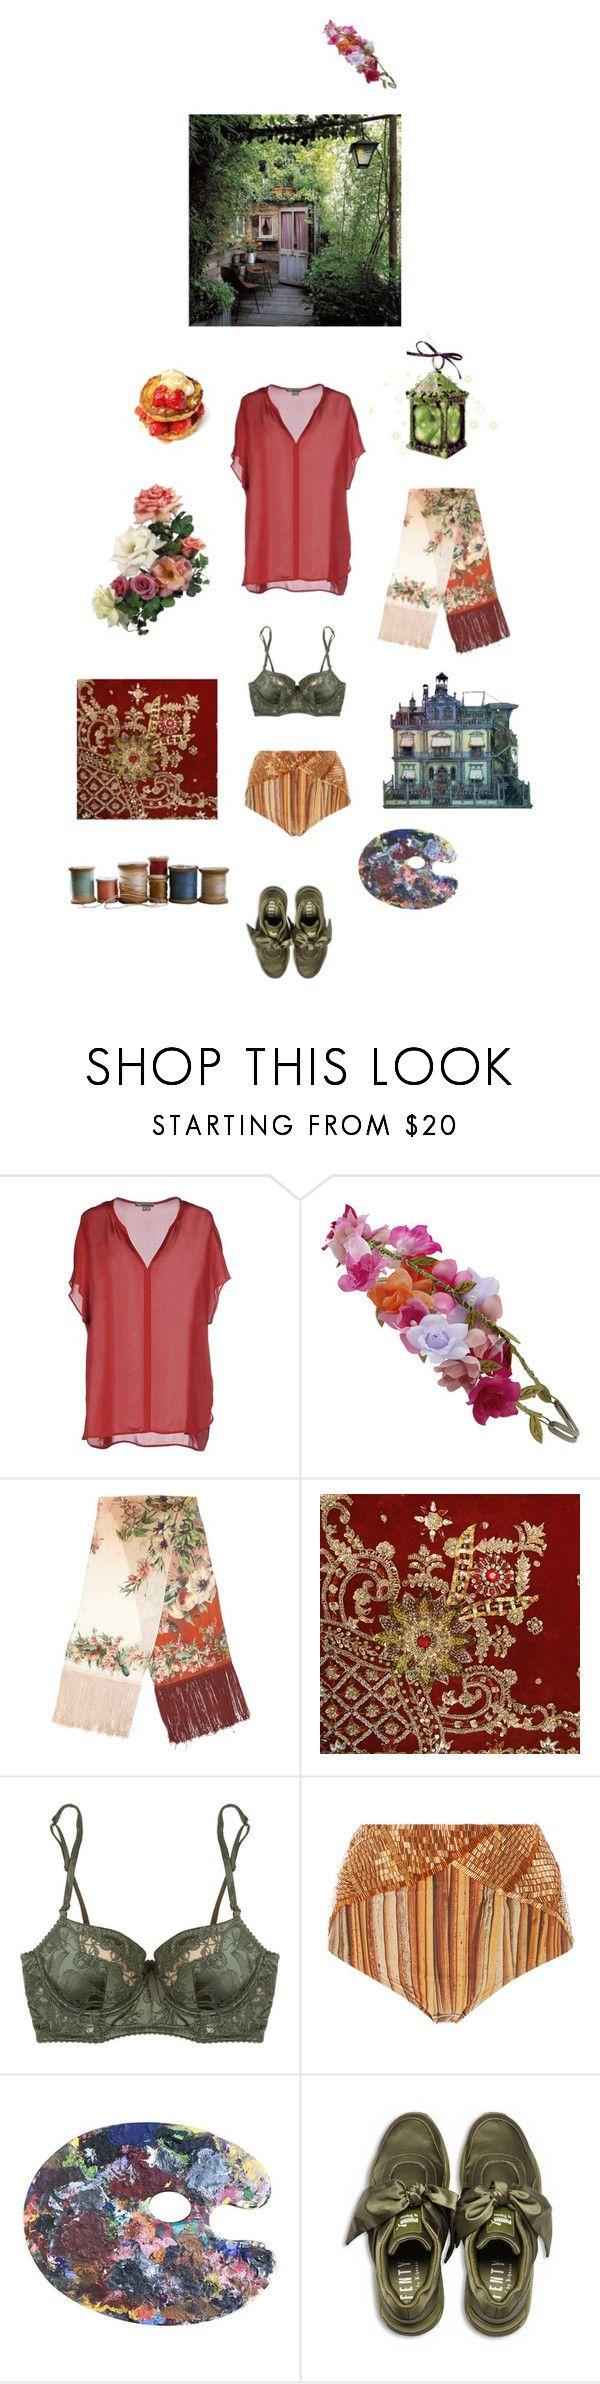 """""""Untitled #2380"""" by zoella ❤ liked on Polyvore featuring Vince, Accessorize, Jean-Paul Gaultier, Elle Macpherson Intimates, Água de Coco and Puma"""